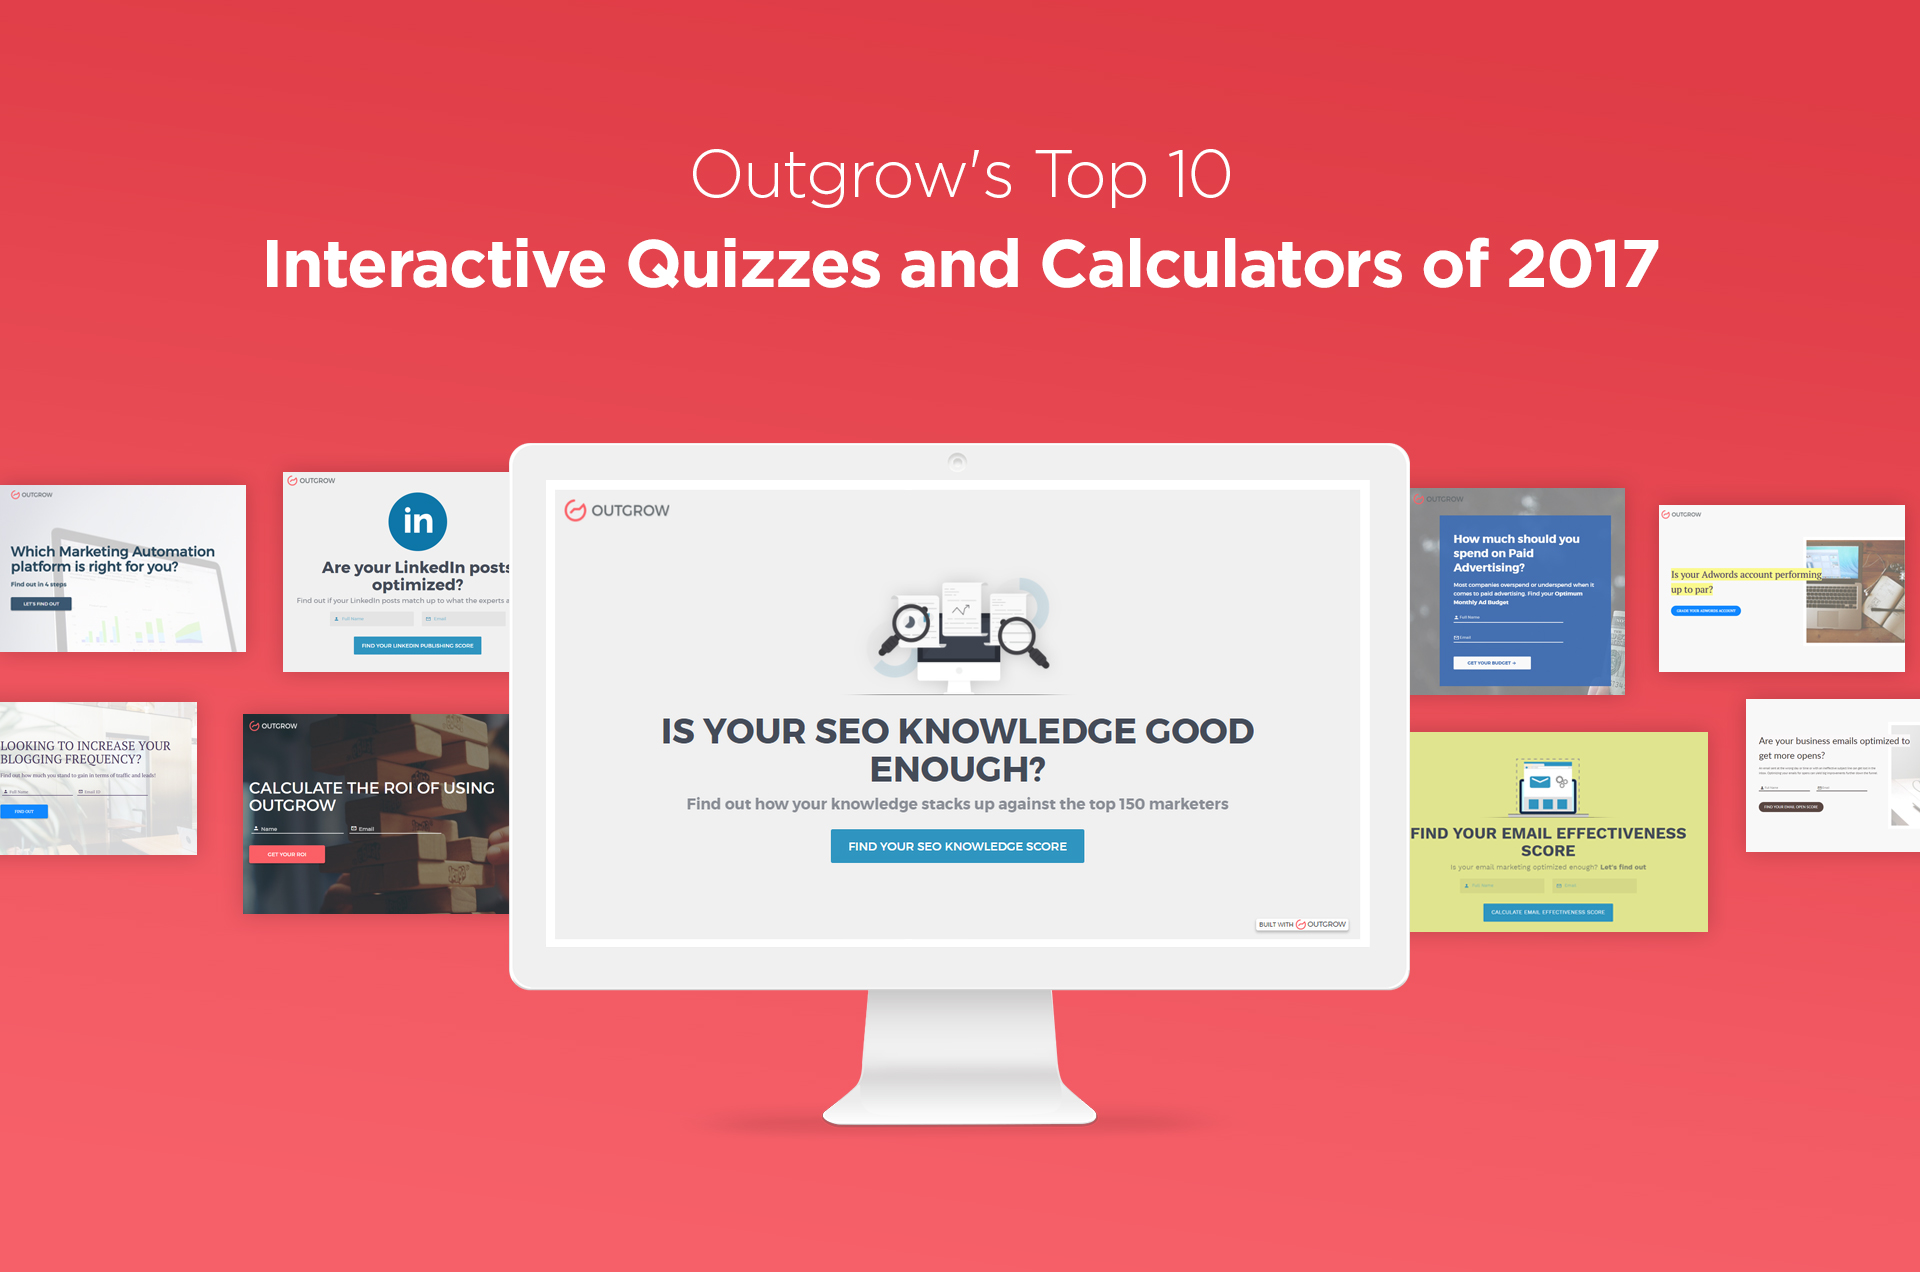 Top 10 Interactive Calculators and Quizzes